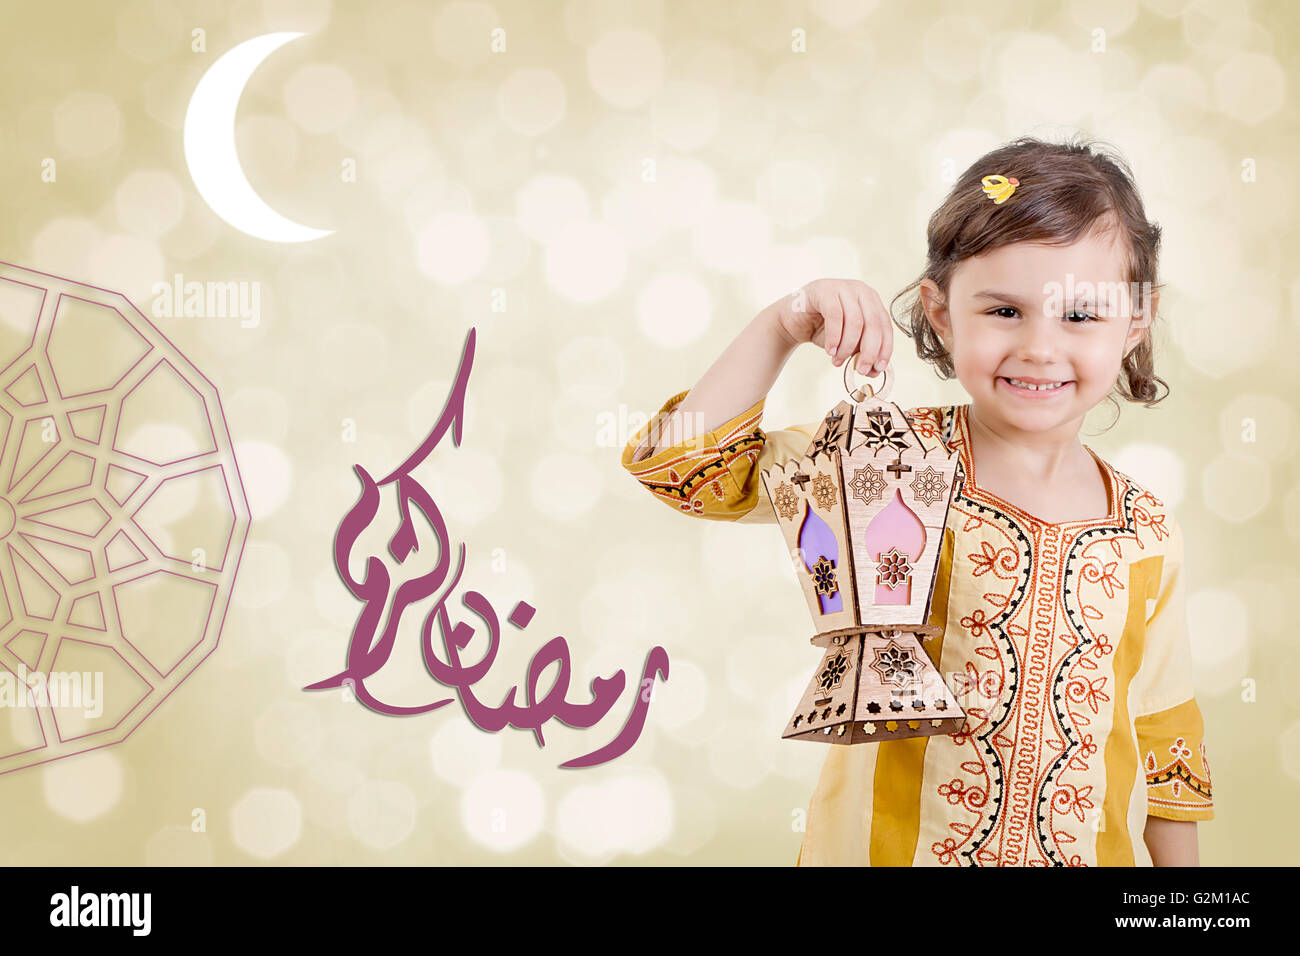 Greeting Card : Ramadan Kareem - Stock Image